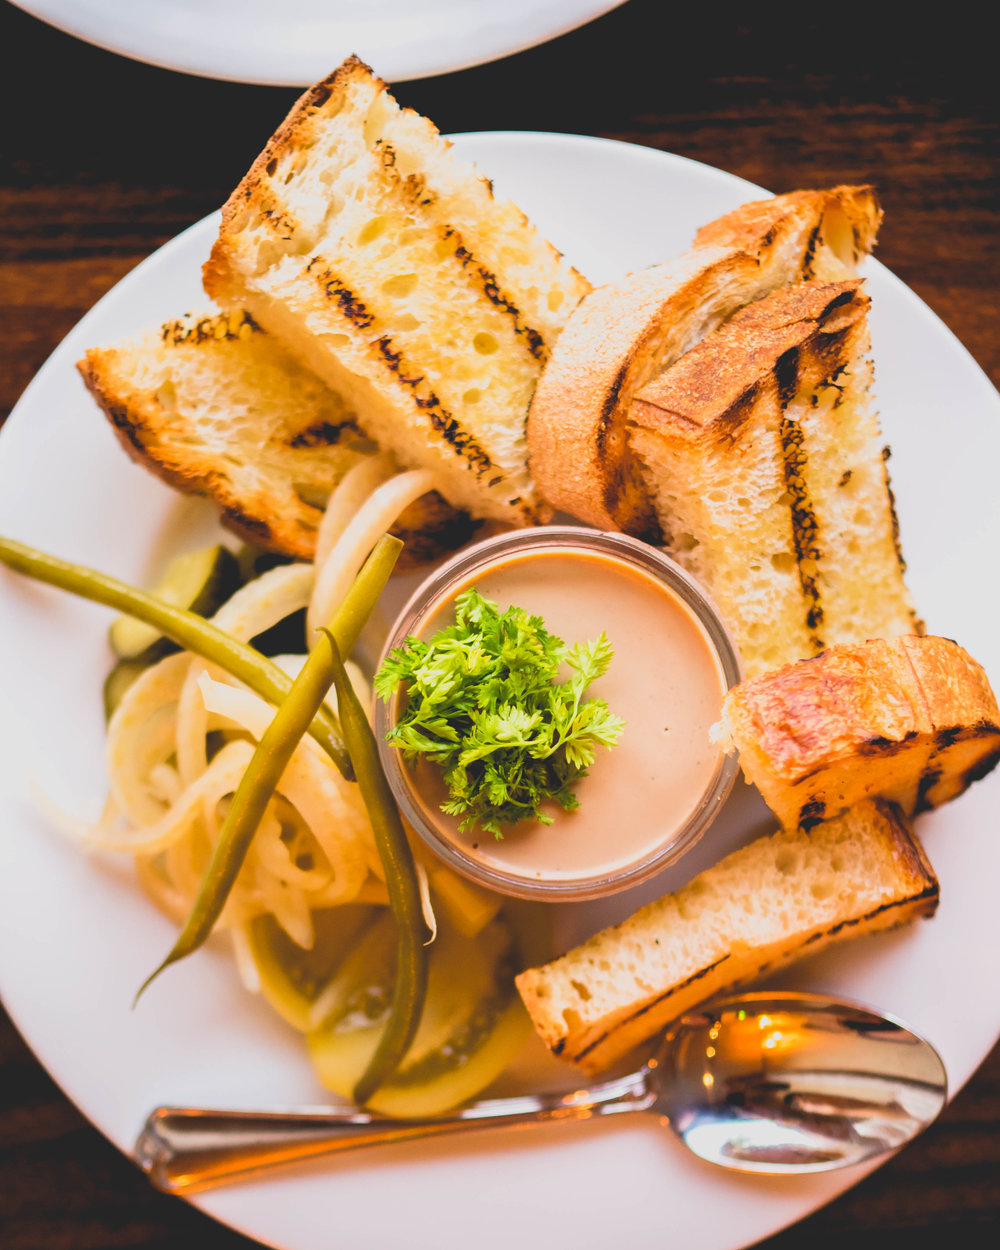 pate: chicken liver pate, grilled bread, house pickles, herbs.